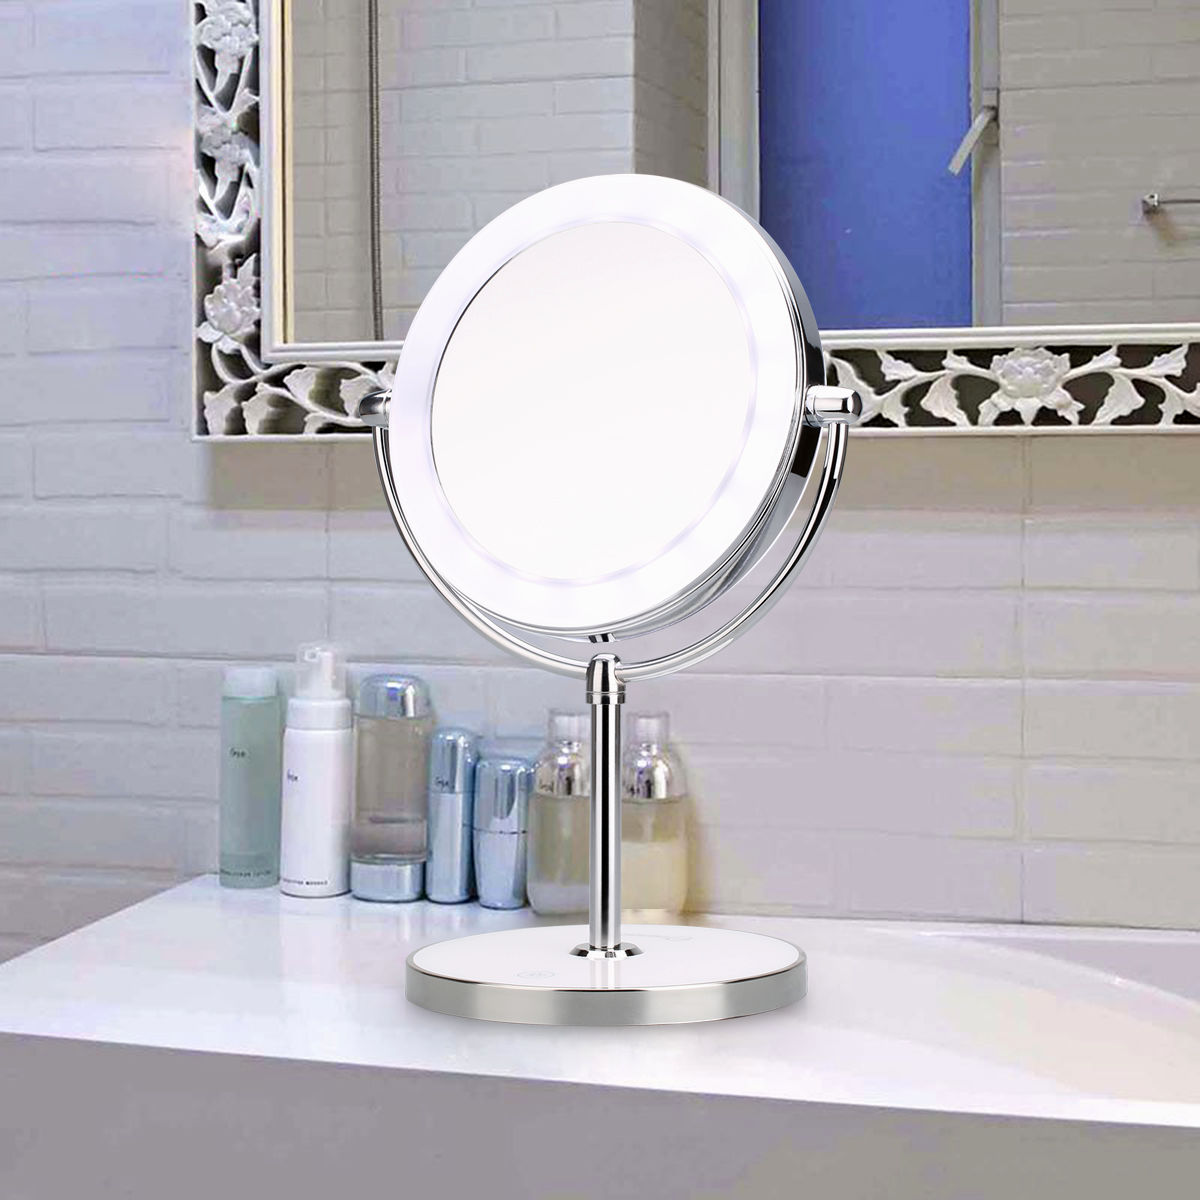 lovely bathroom makeup vanity portrait-Cute Bathroom Makeup Vanity Photograph